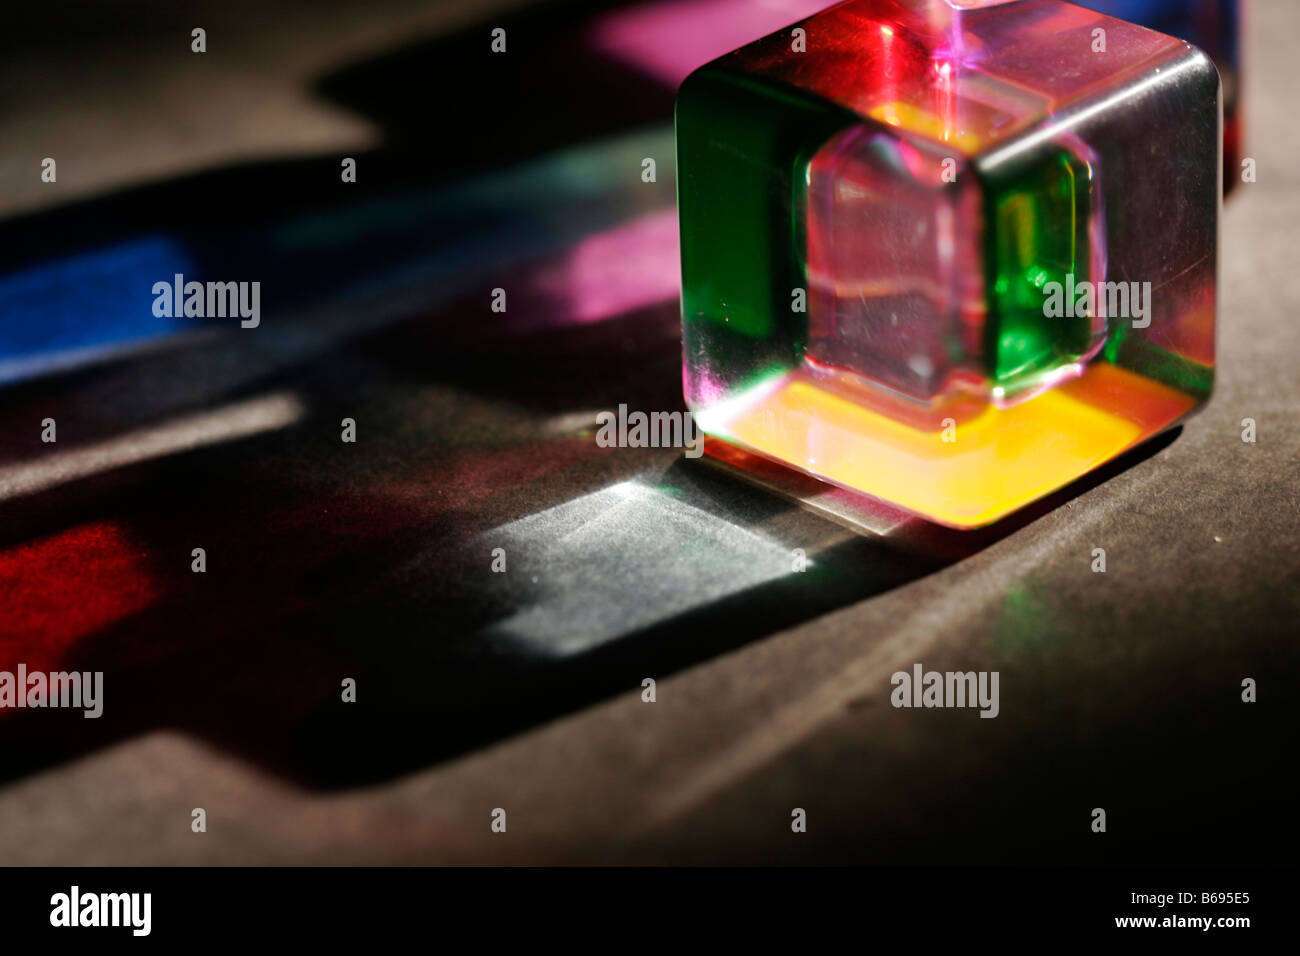 Colored acrylic cube with light shining through with colors spilling onto the table - Stock Image